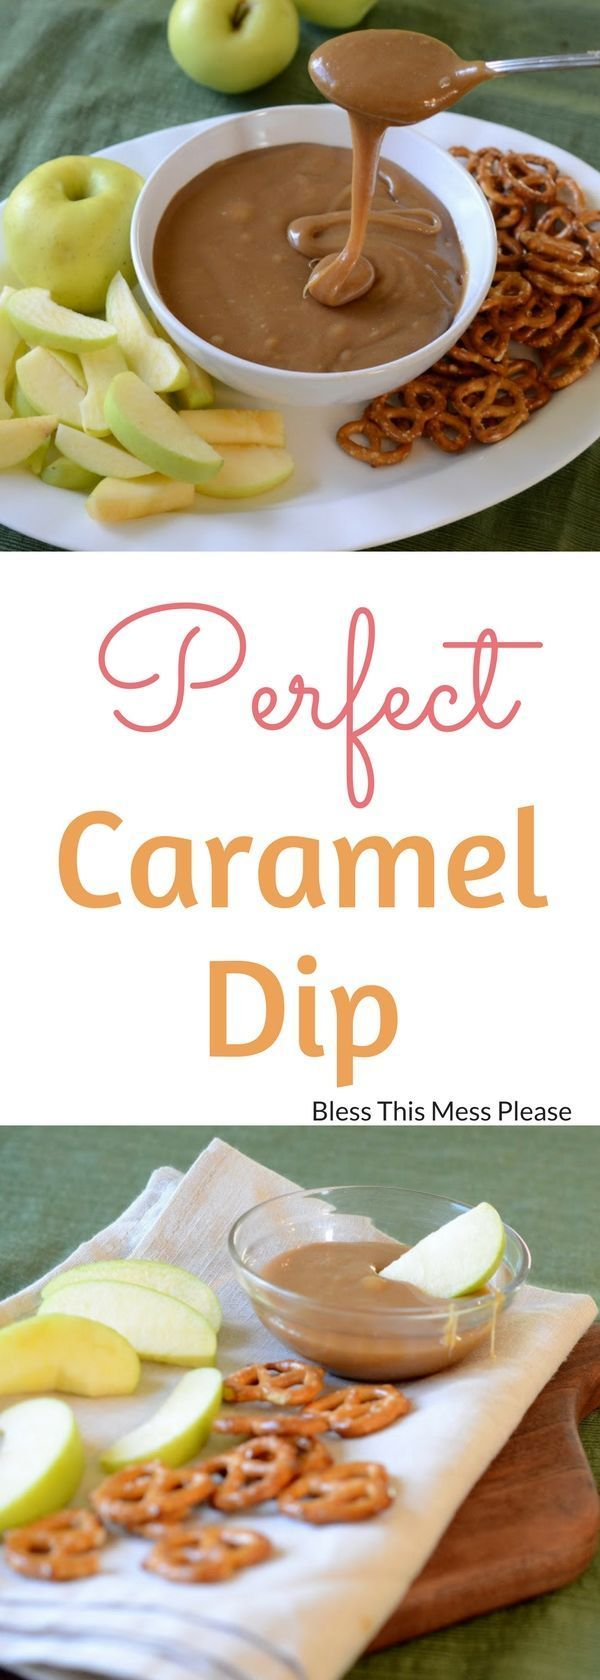 The Best Caramel Dip - Make this easy recipe with ingredients that you have on hand. This dip is the perfect consistency for dipping pretzels and apples. #carameldip #caramel #snack #easysnack